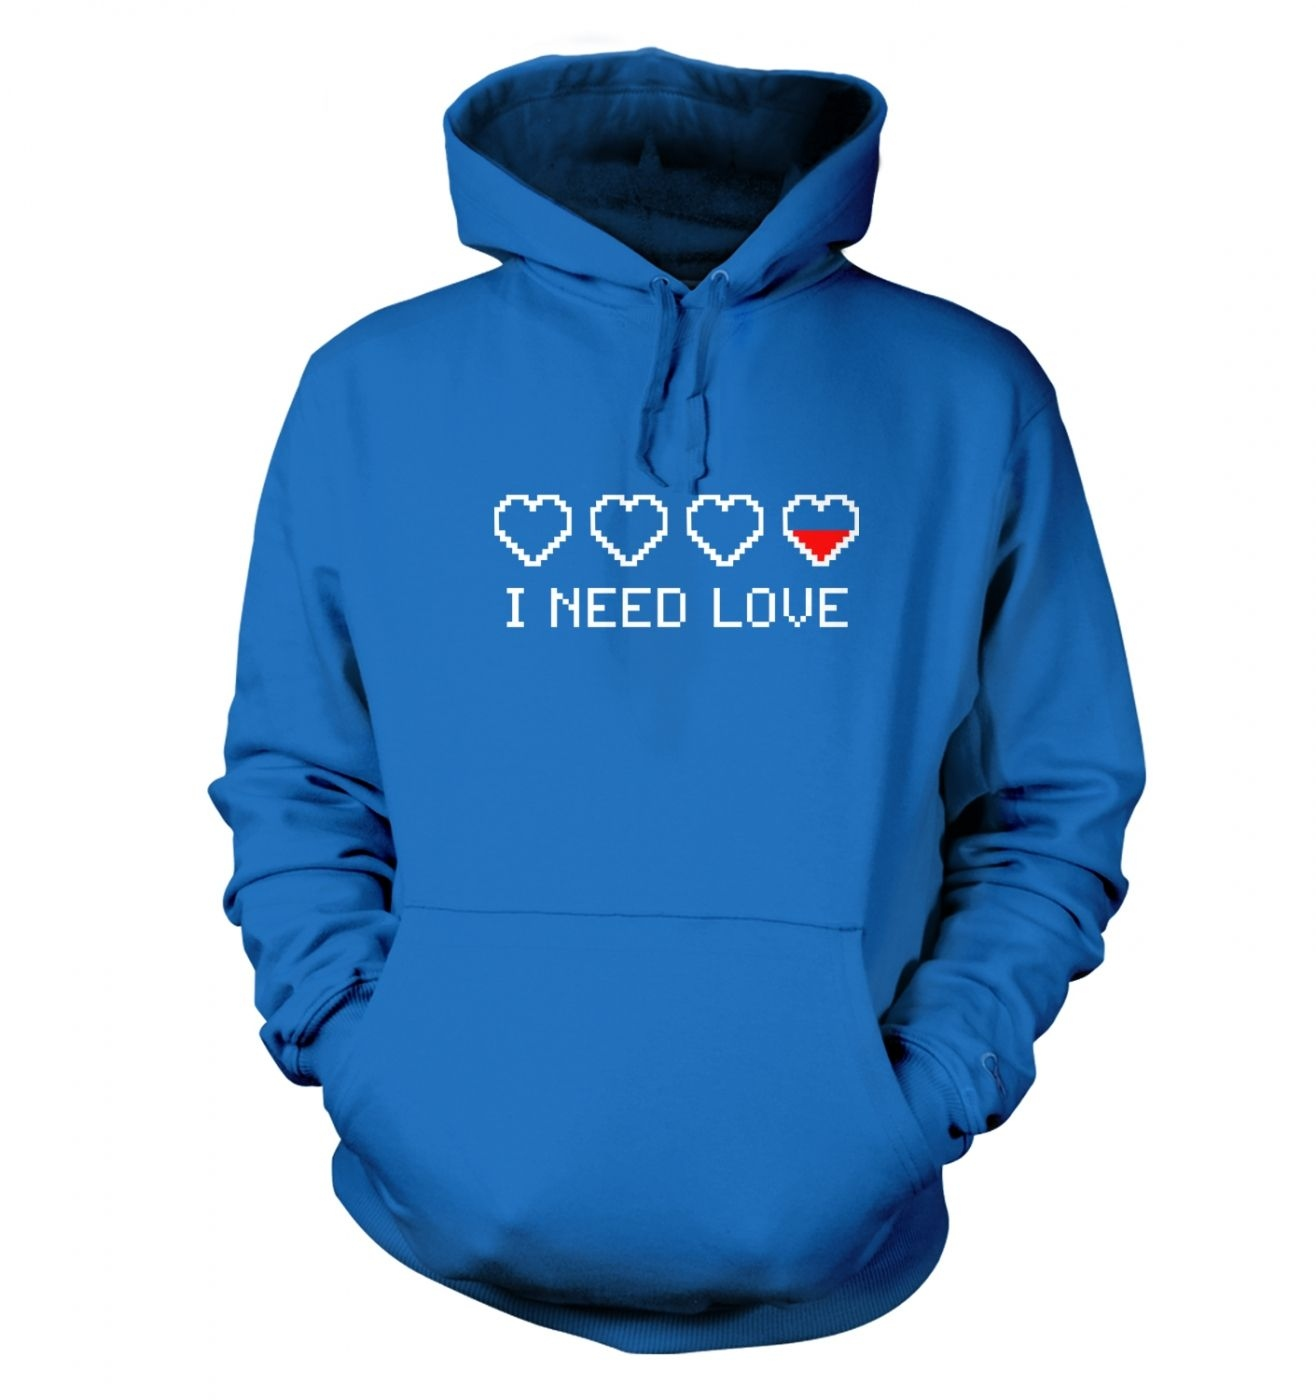 Pixellated I Need Love hoodie